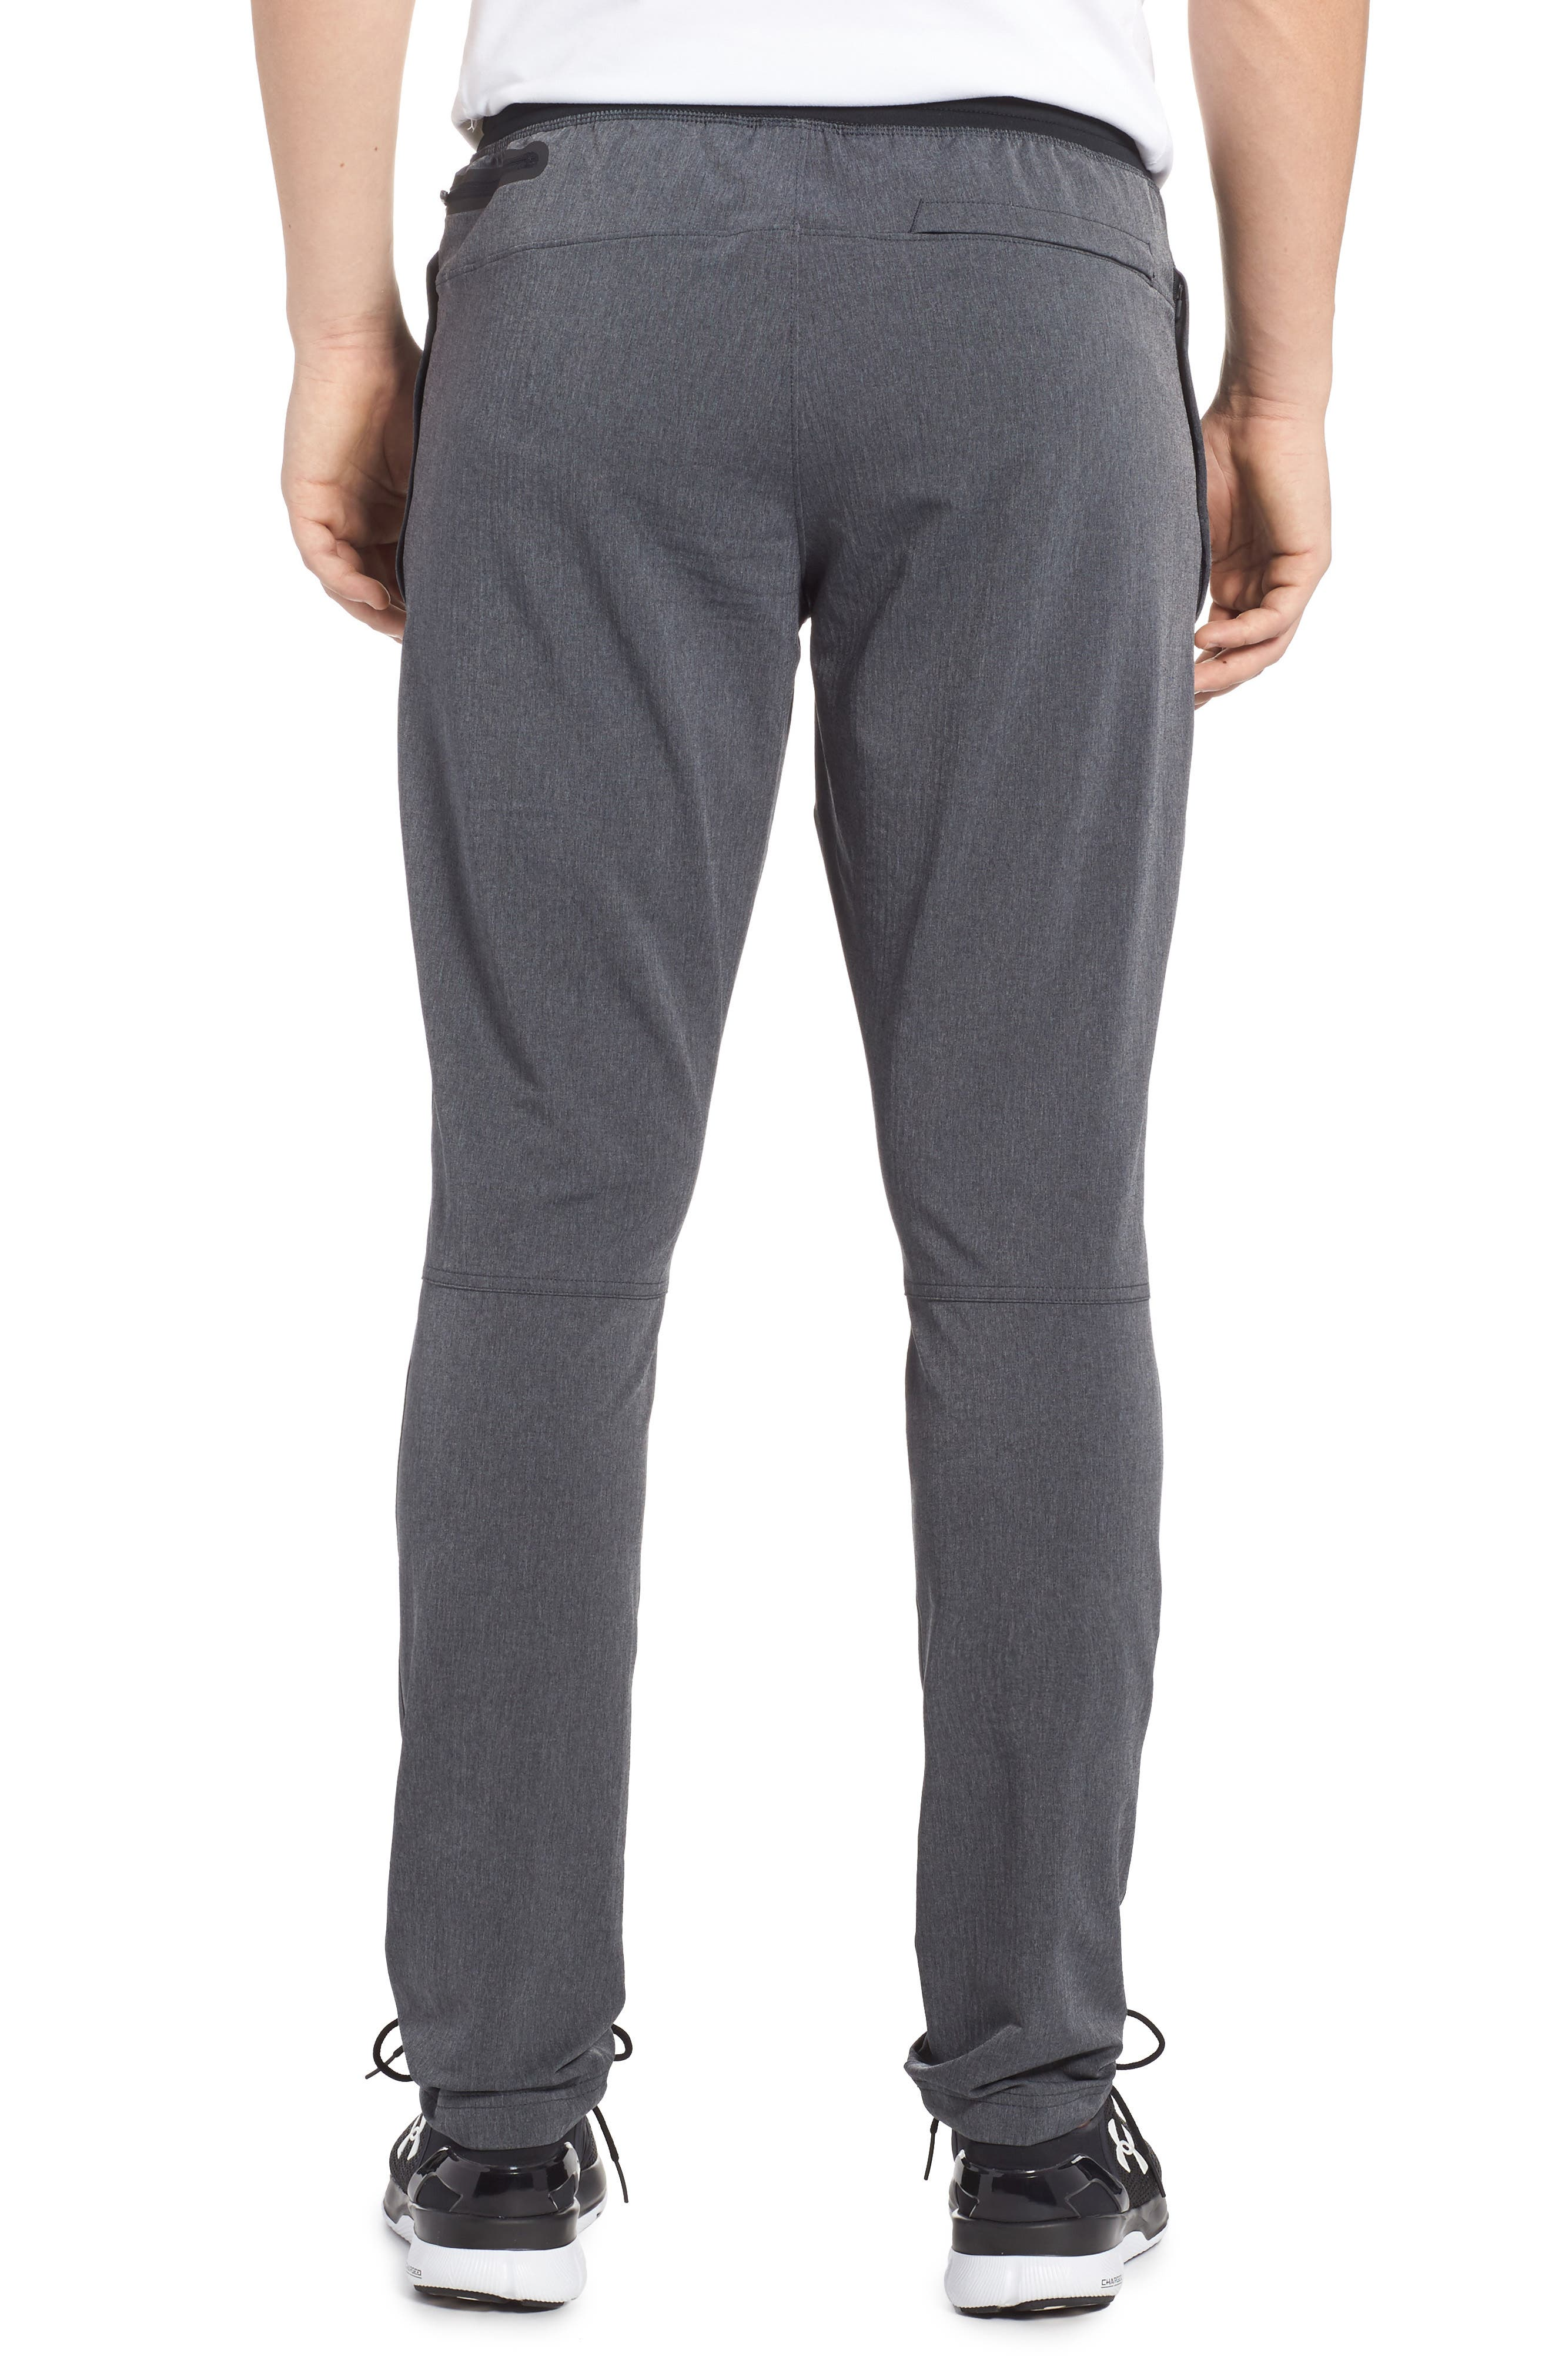 Fitted Woven Training Pants,                             Alternate thumbnail 10, color,